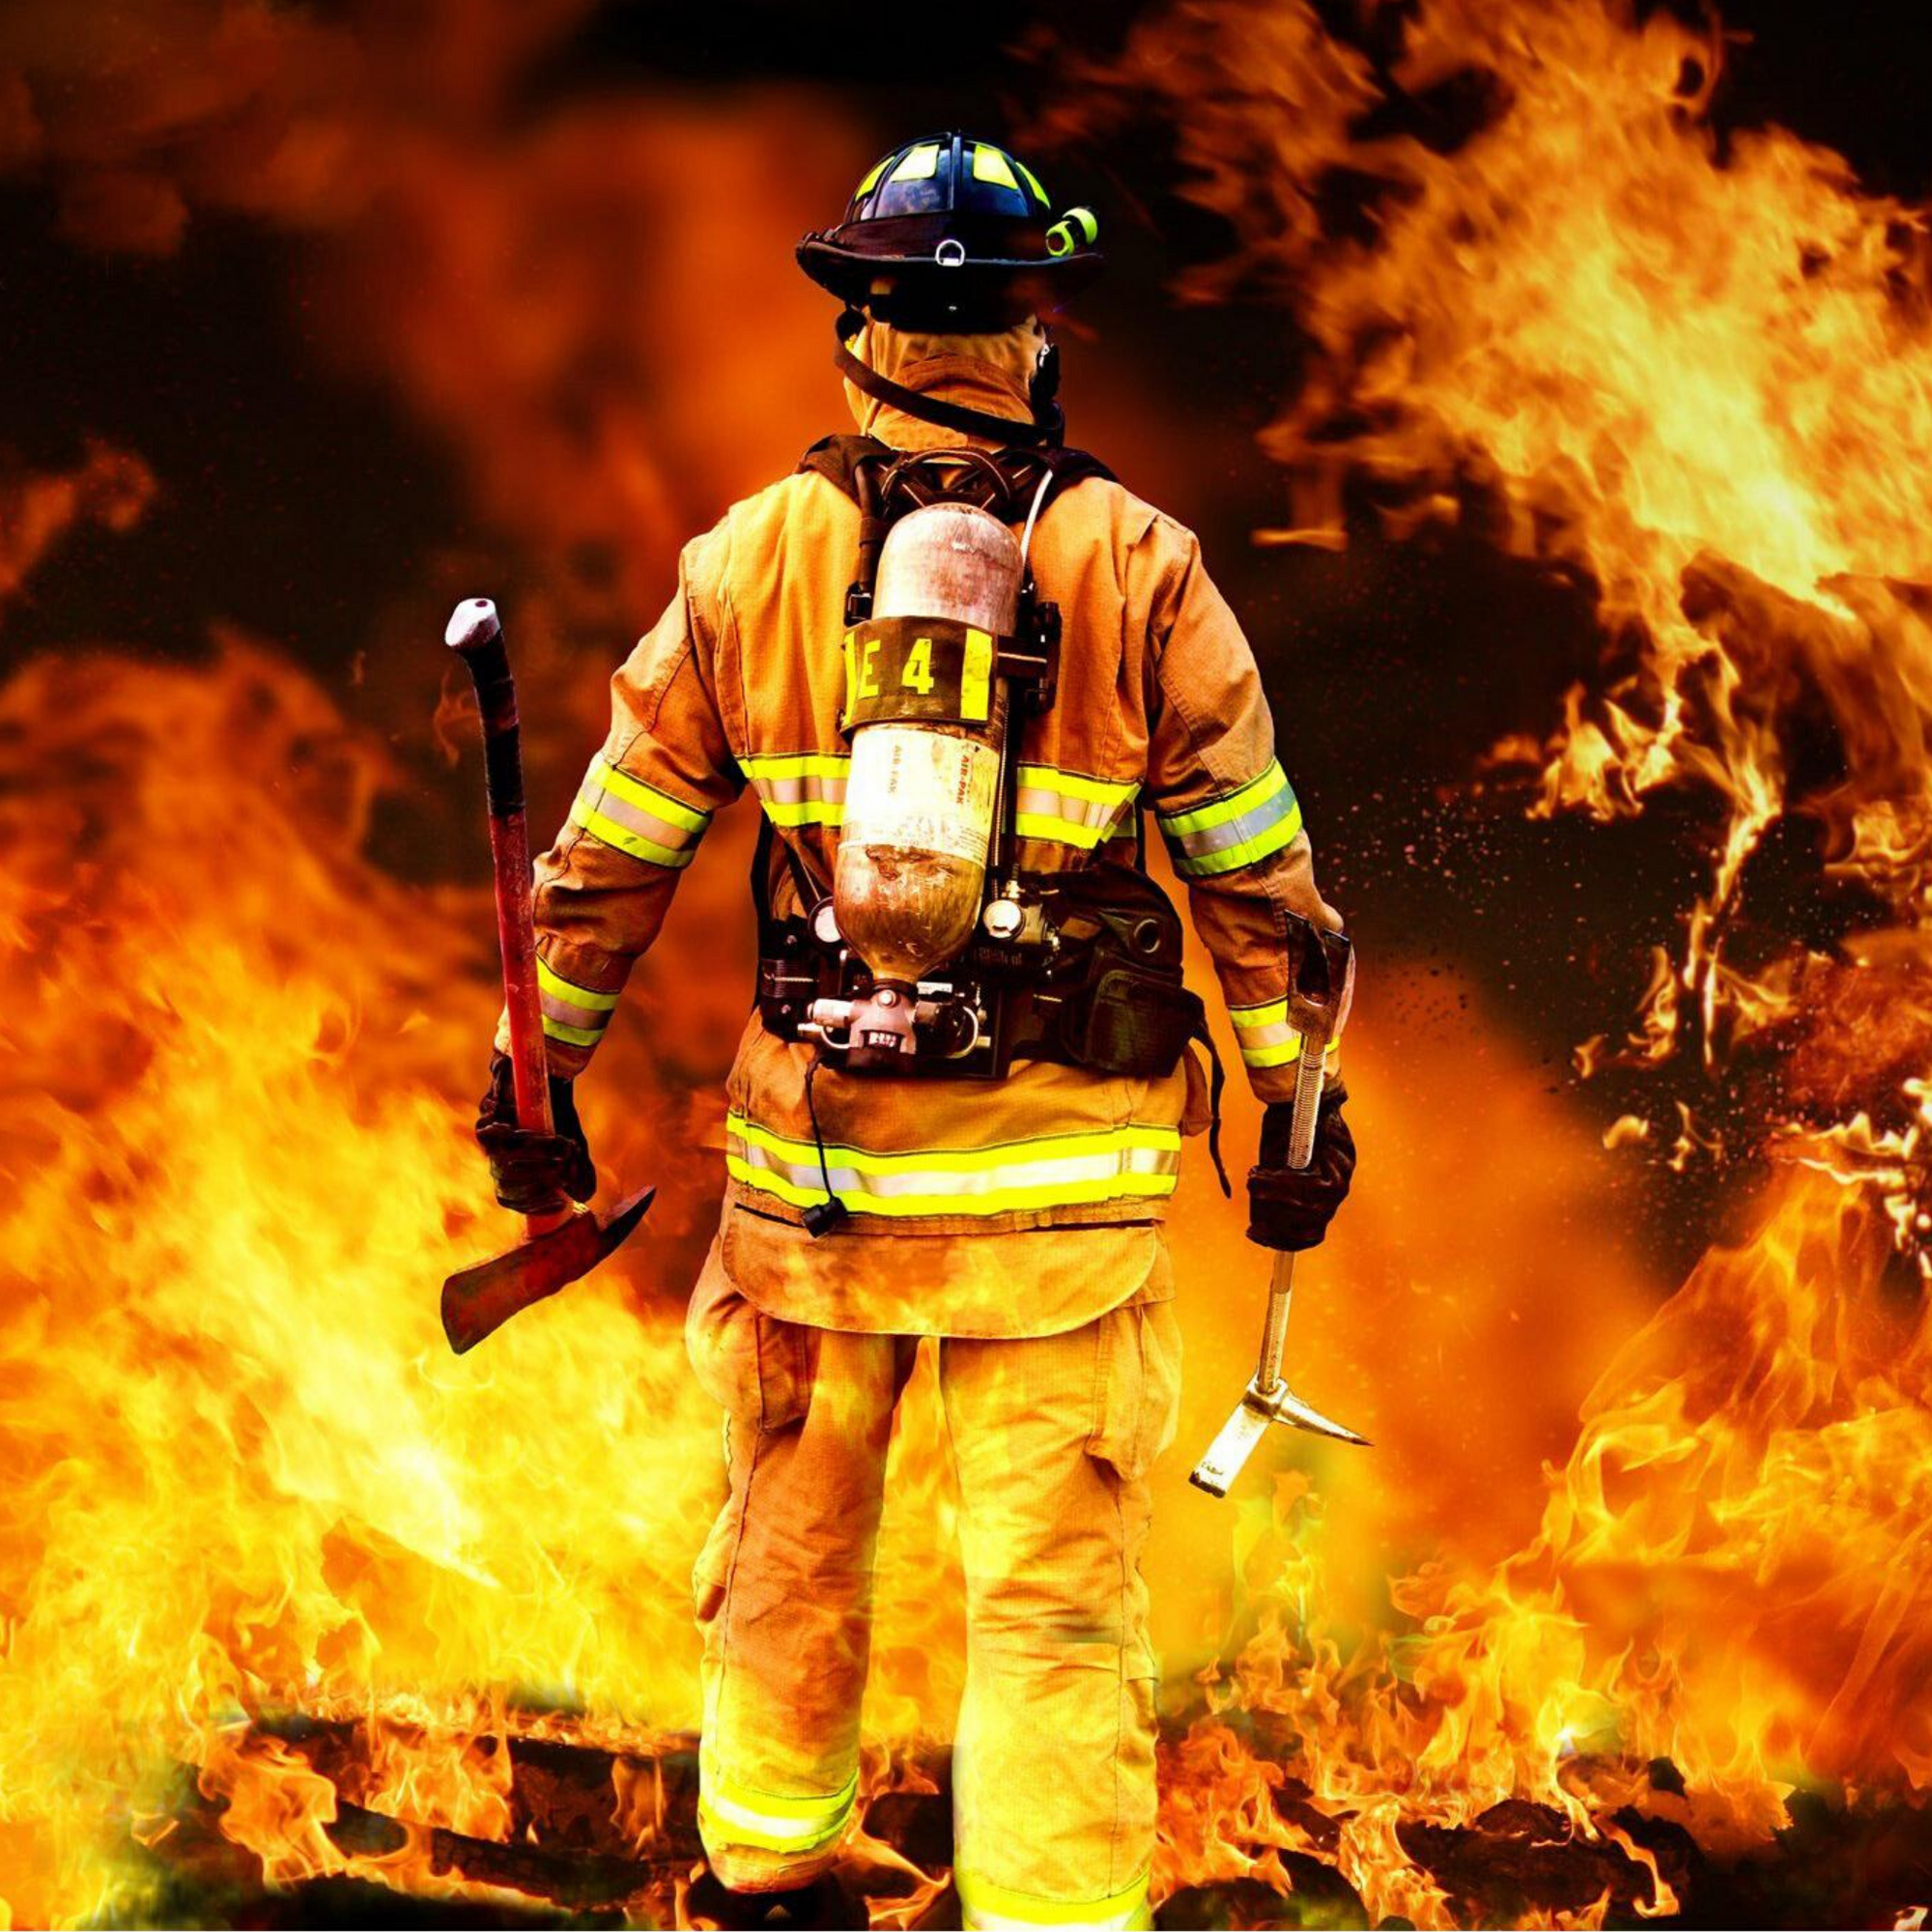 Fireman in front of fire